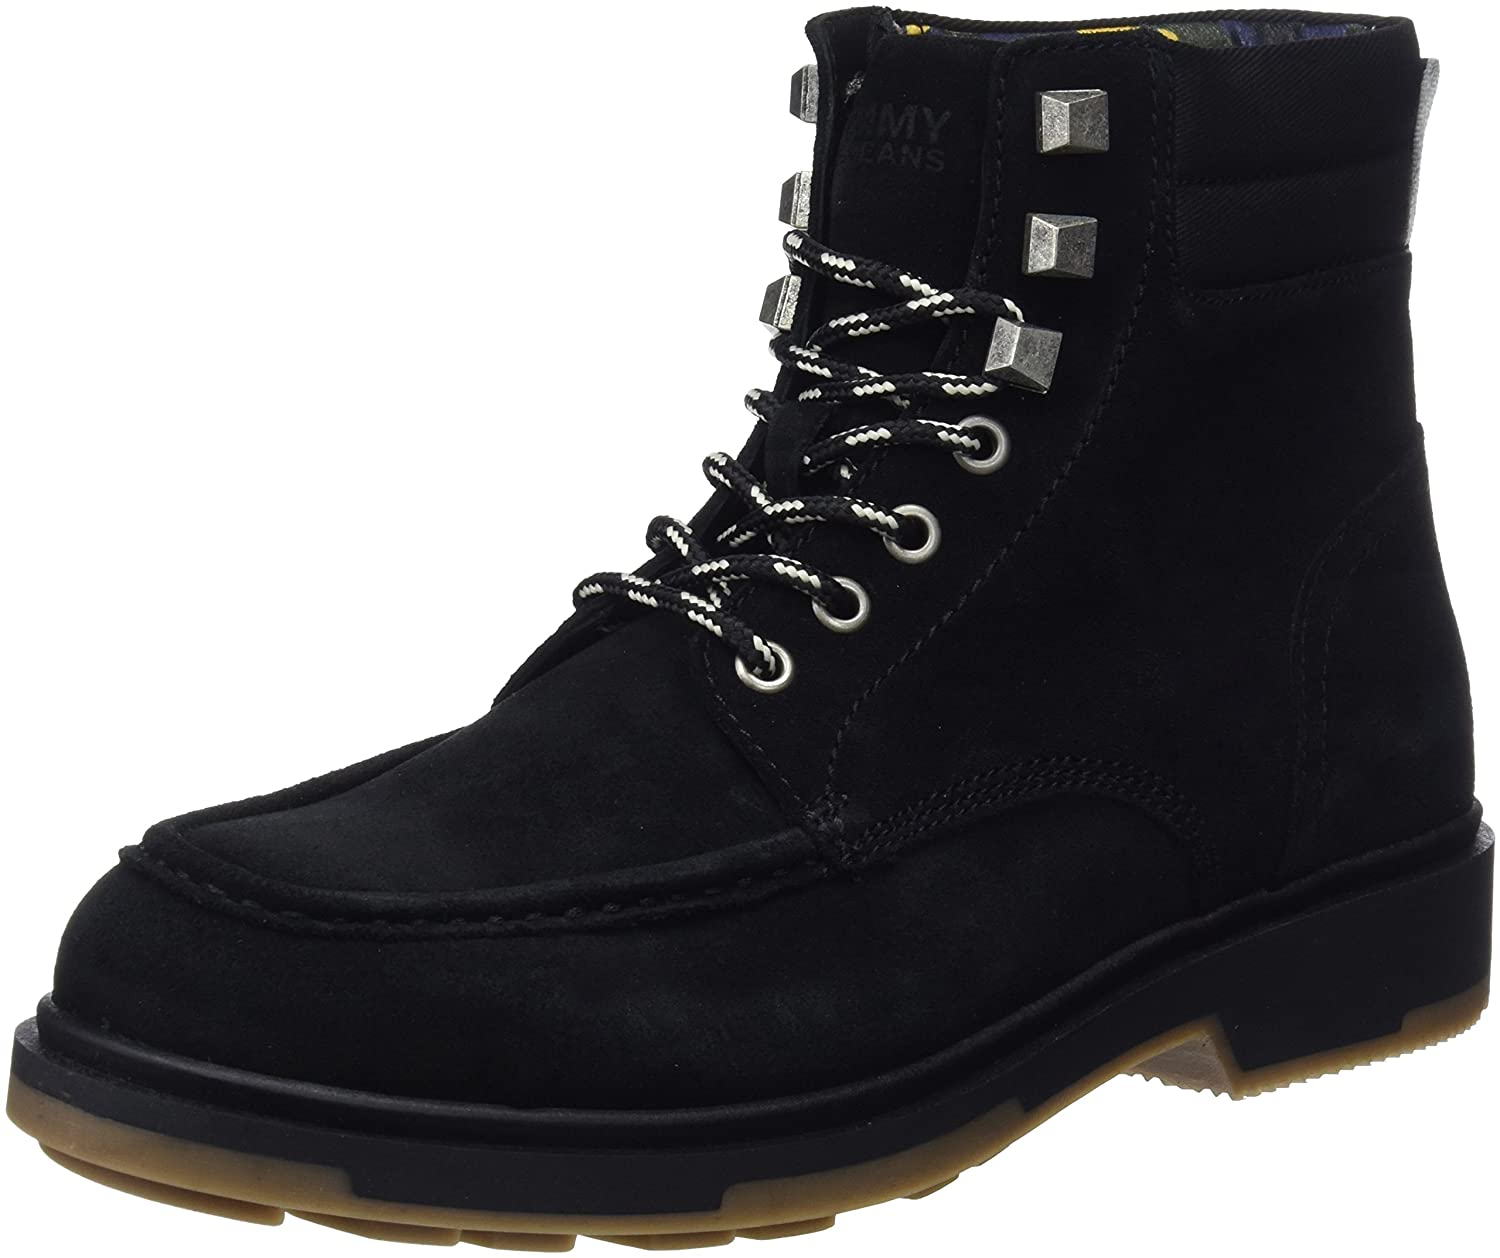 TALLA 41 EU. Tommy Jeans Casual Outdoor Lace Up Boot, Botas Militar para Hombre